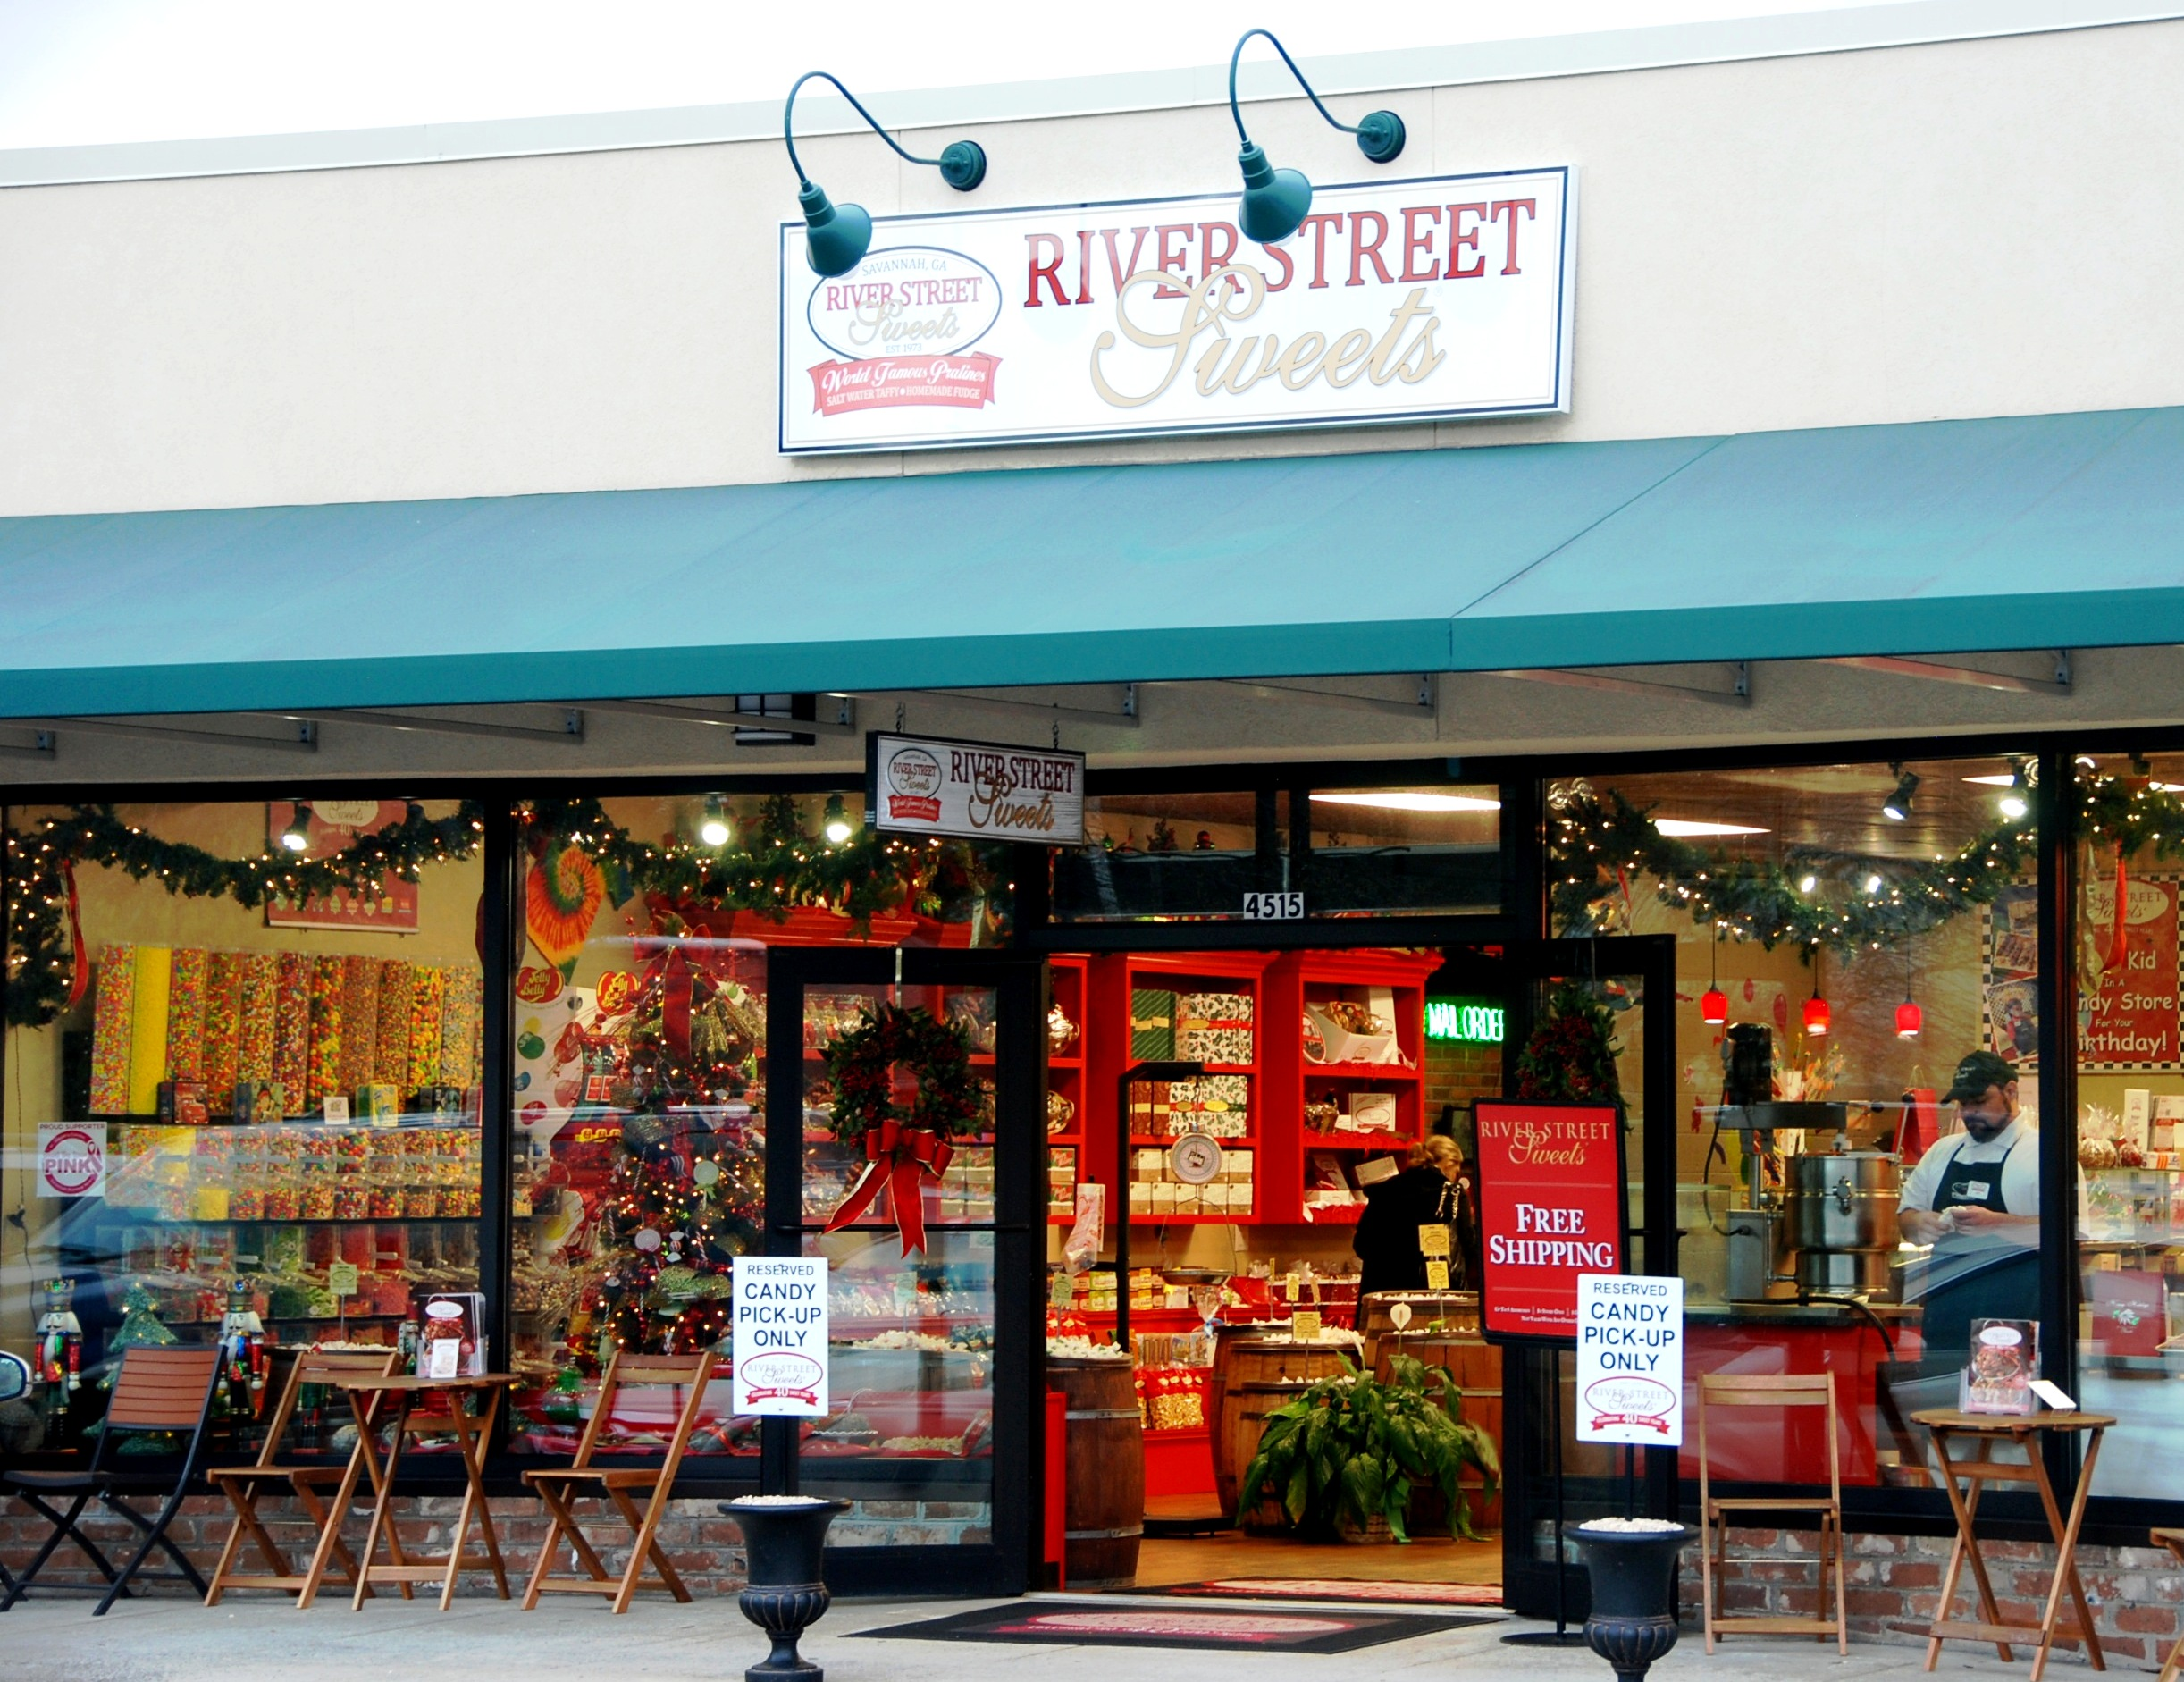 Riverstreet Sweets